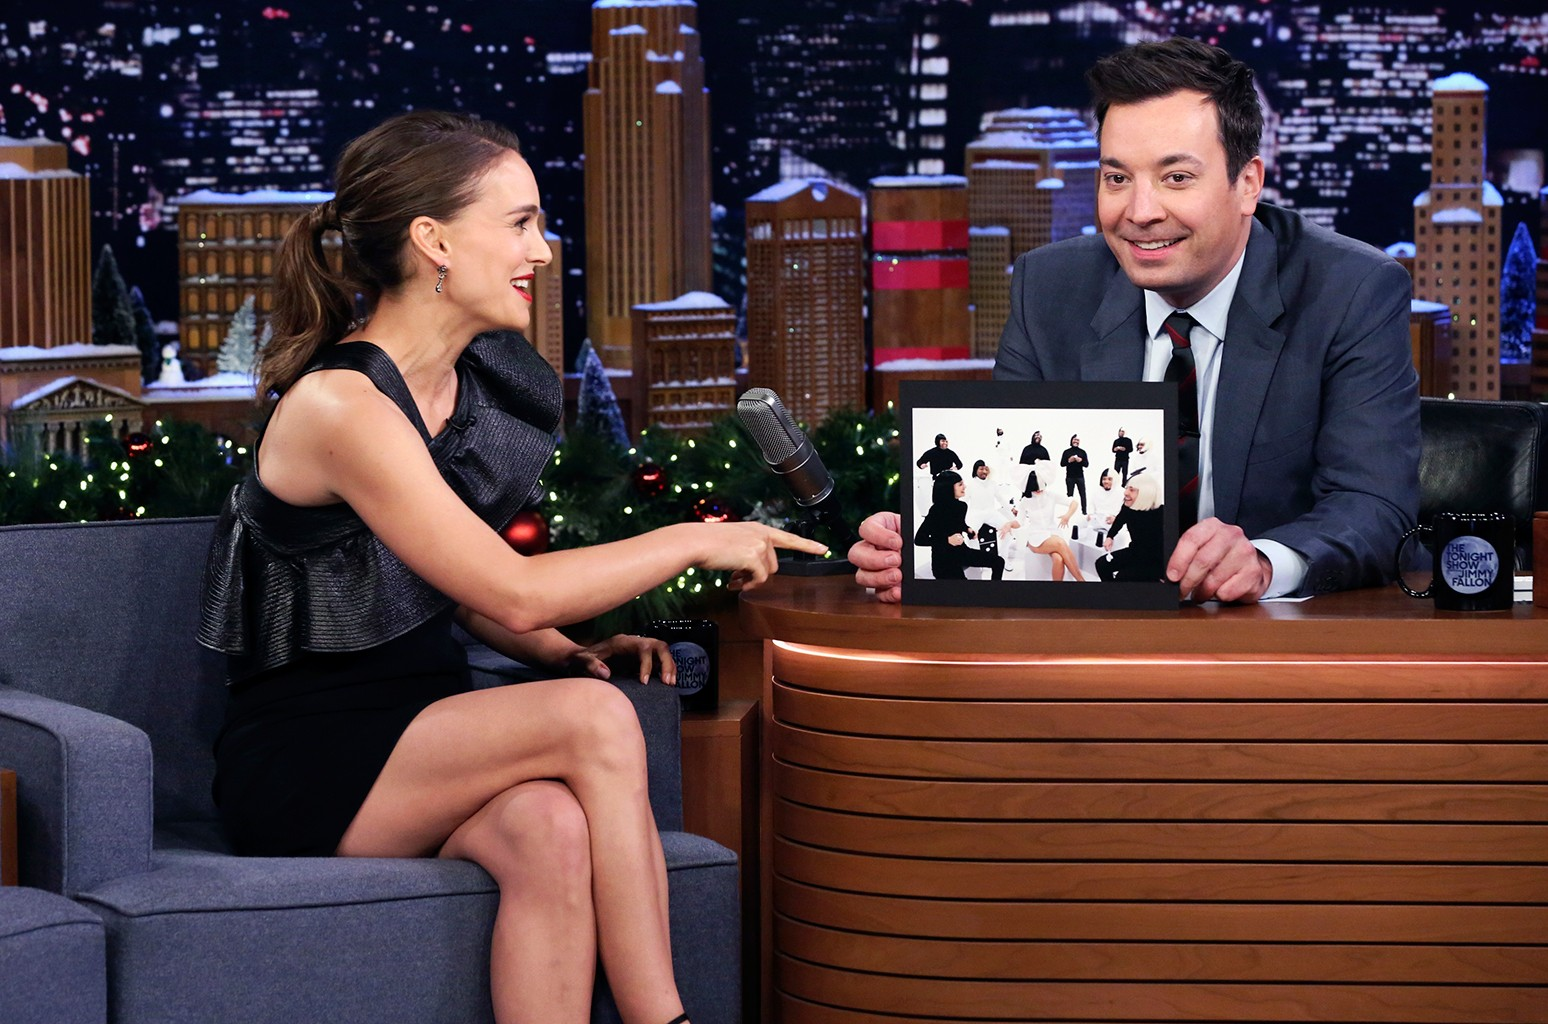 Natalie Portman during an interview with host Jimmy Fallon on The Tonight Show Starring Jimmy Fallon on Dec. 12, 2018.